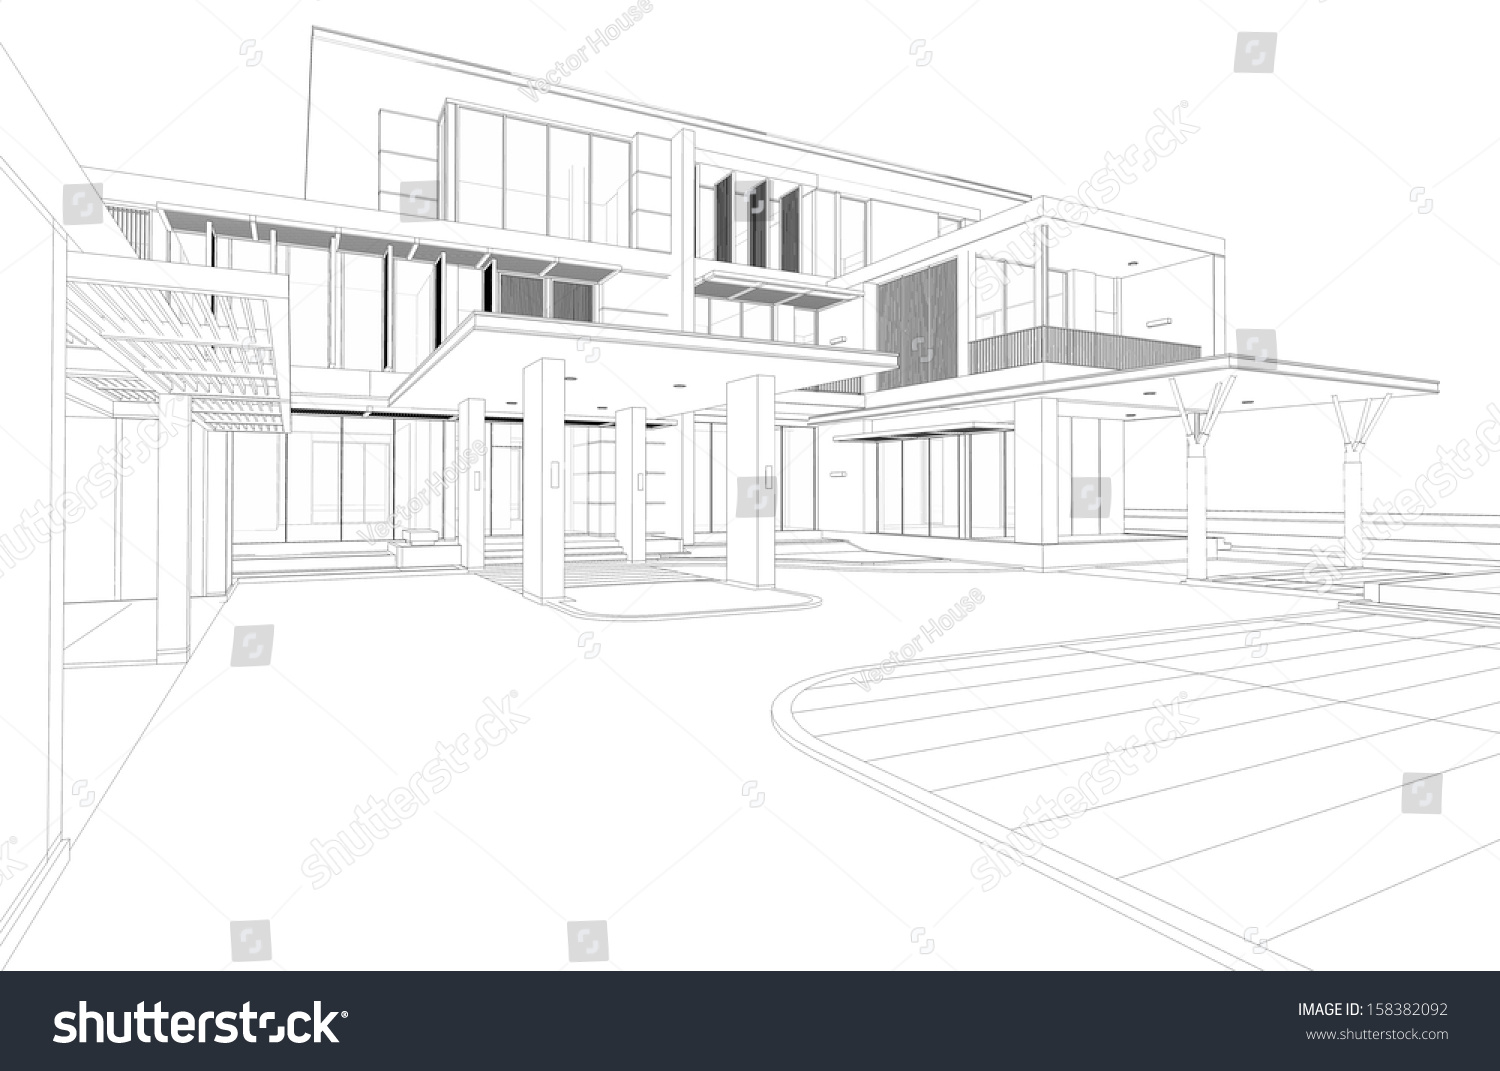 Wireframe drawing of tropical modern house 3d render of building